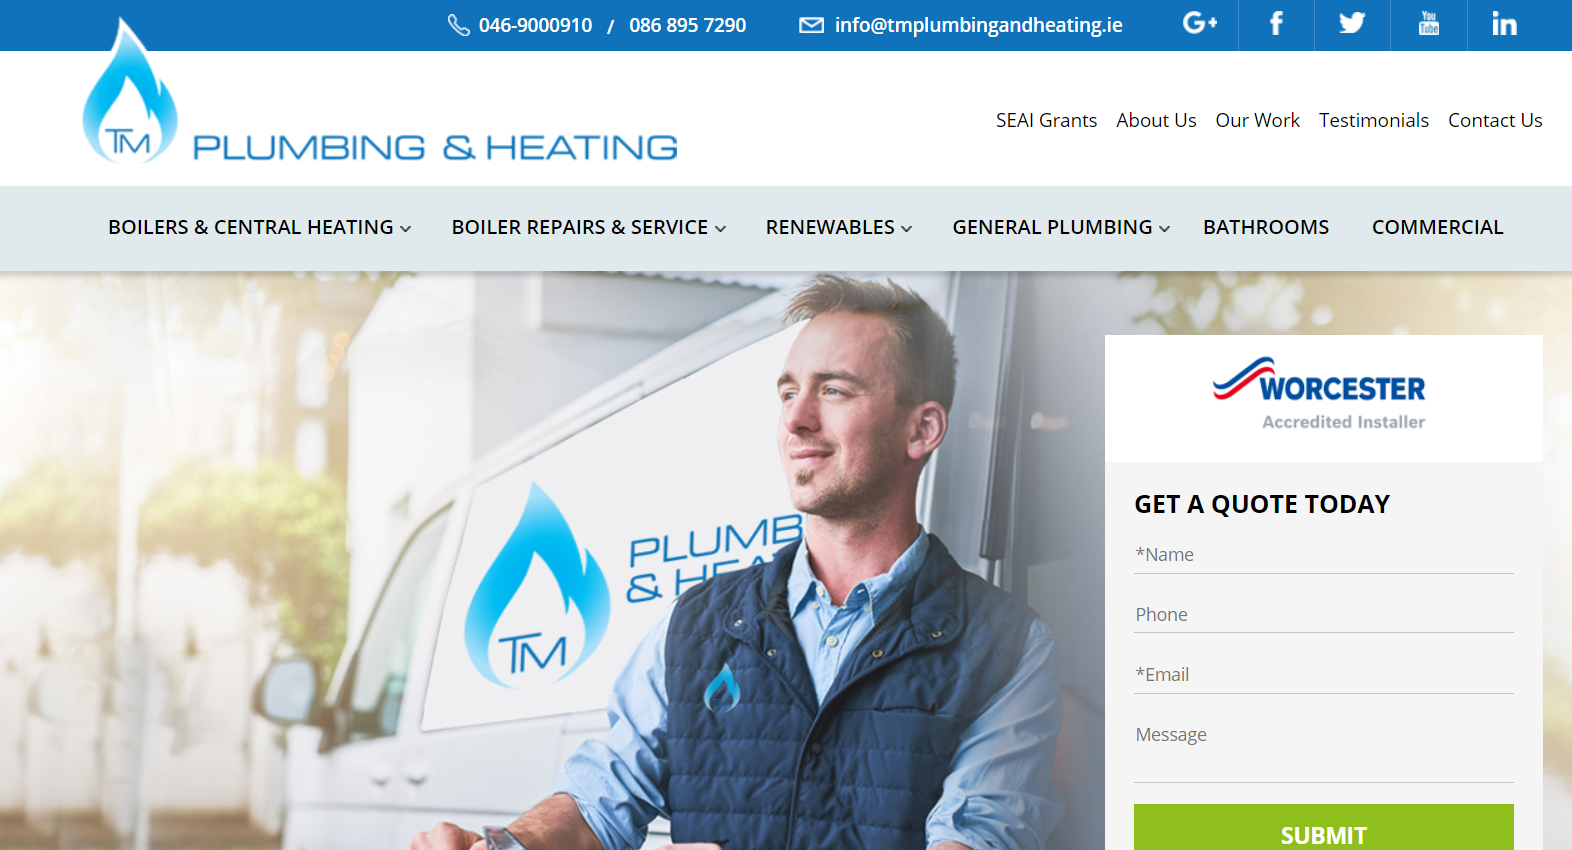 TM Plumbing & Heating